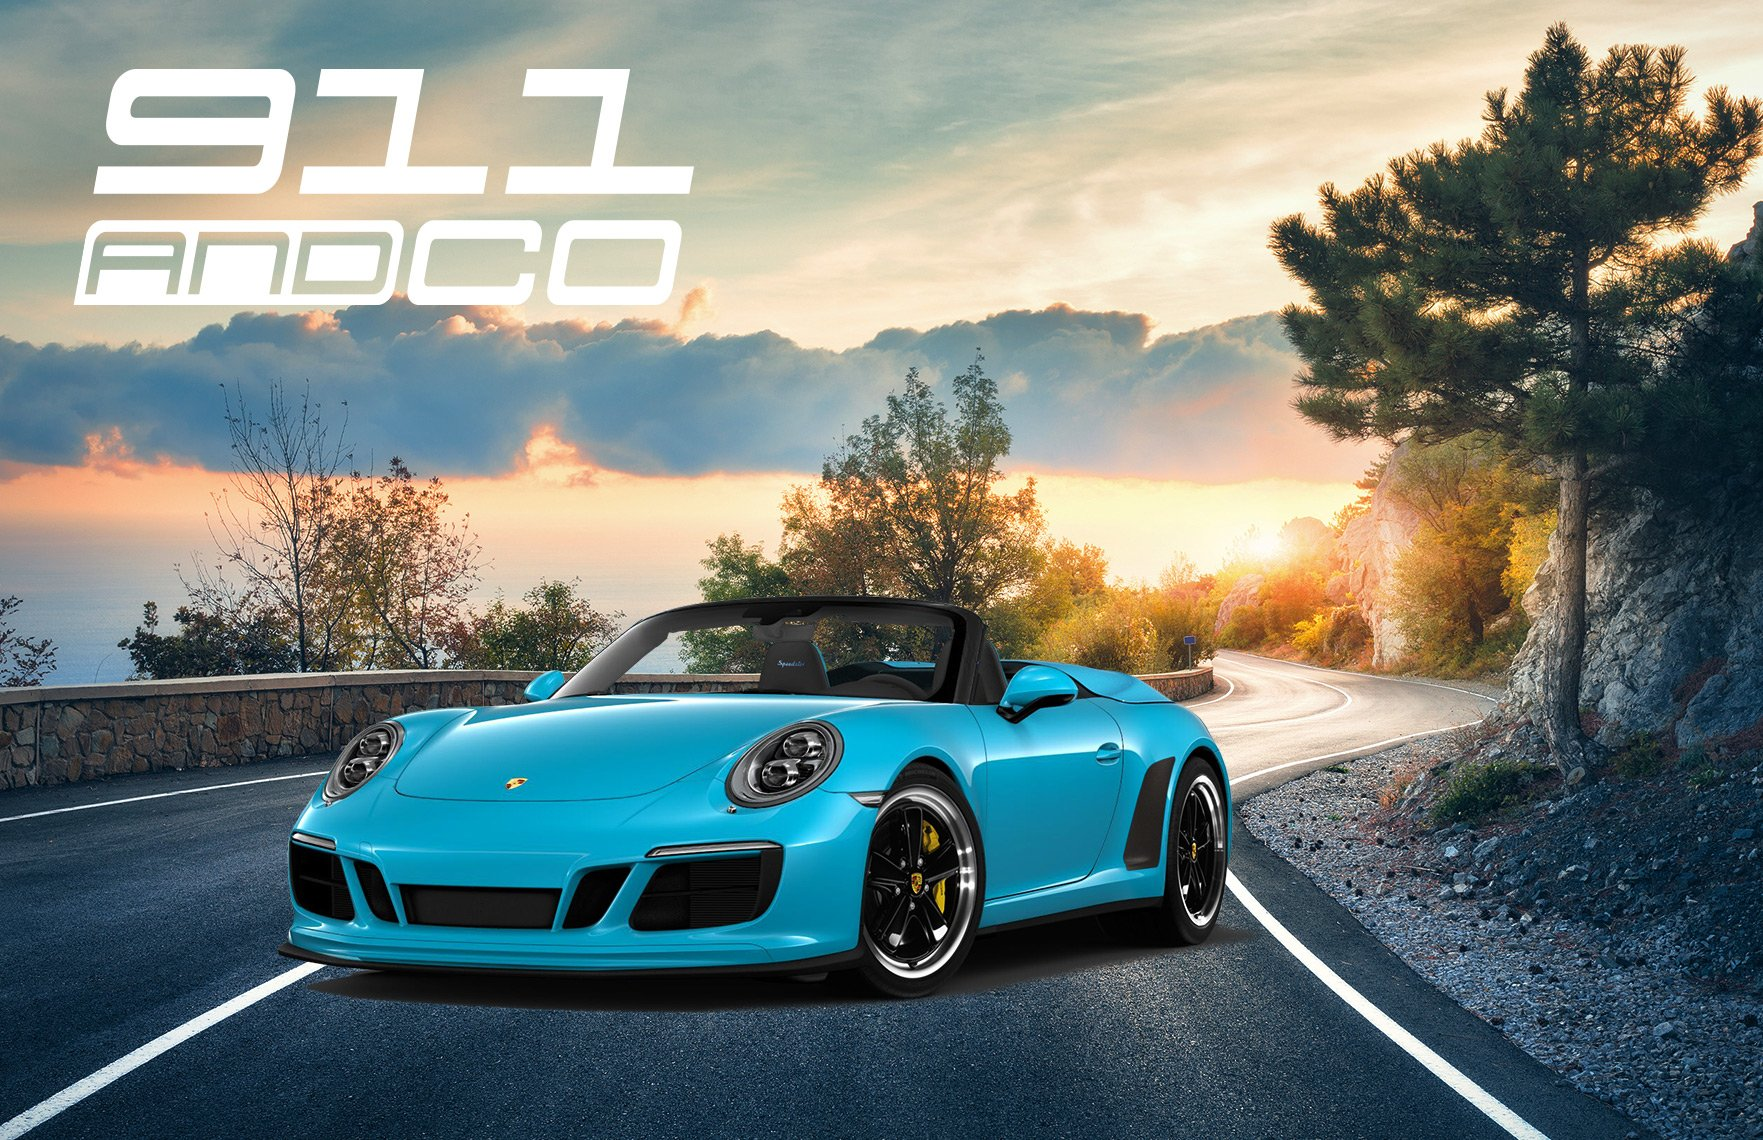 la porsche 911 speedster 991 sera anim e par le flat6 de la gt3. Black Bedroom Furniture Sets. Home Design Ideas